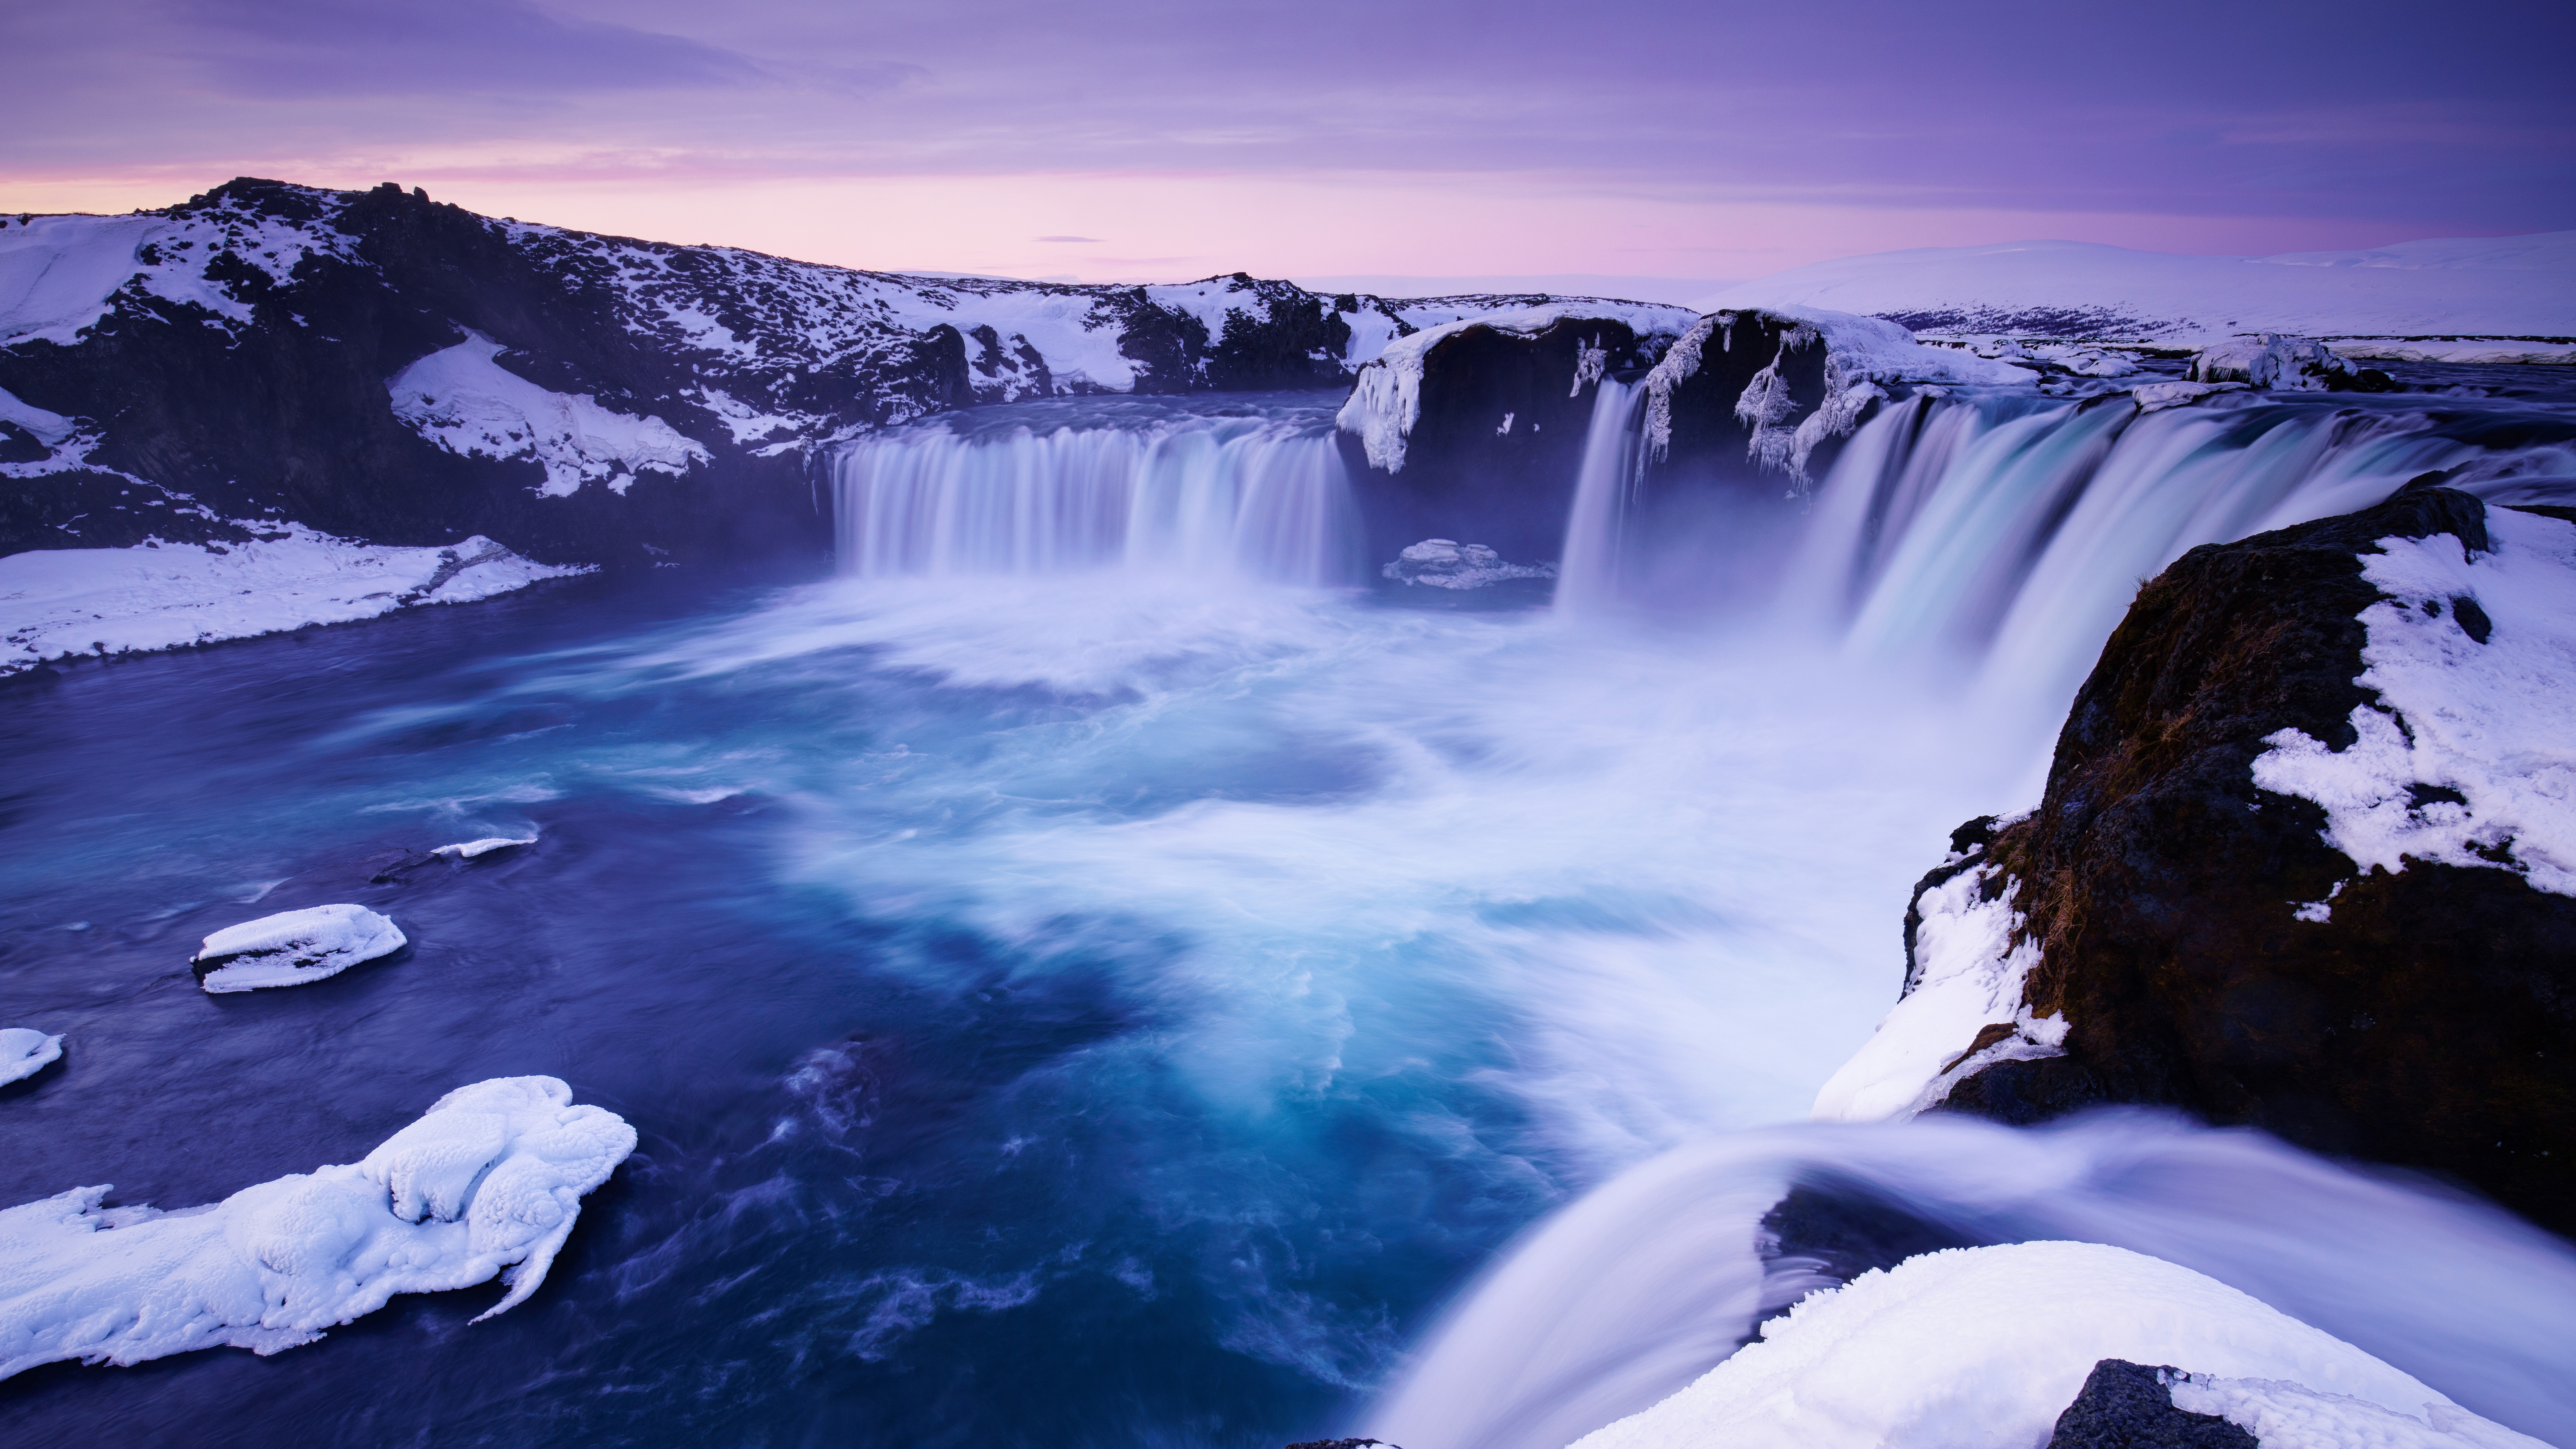 Cute Wallpapers For Iphone 7 Plus Godafoss Waterfall Iceland 4k 8k Wallpapers Hd